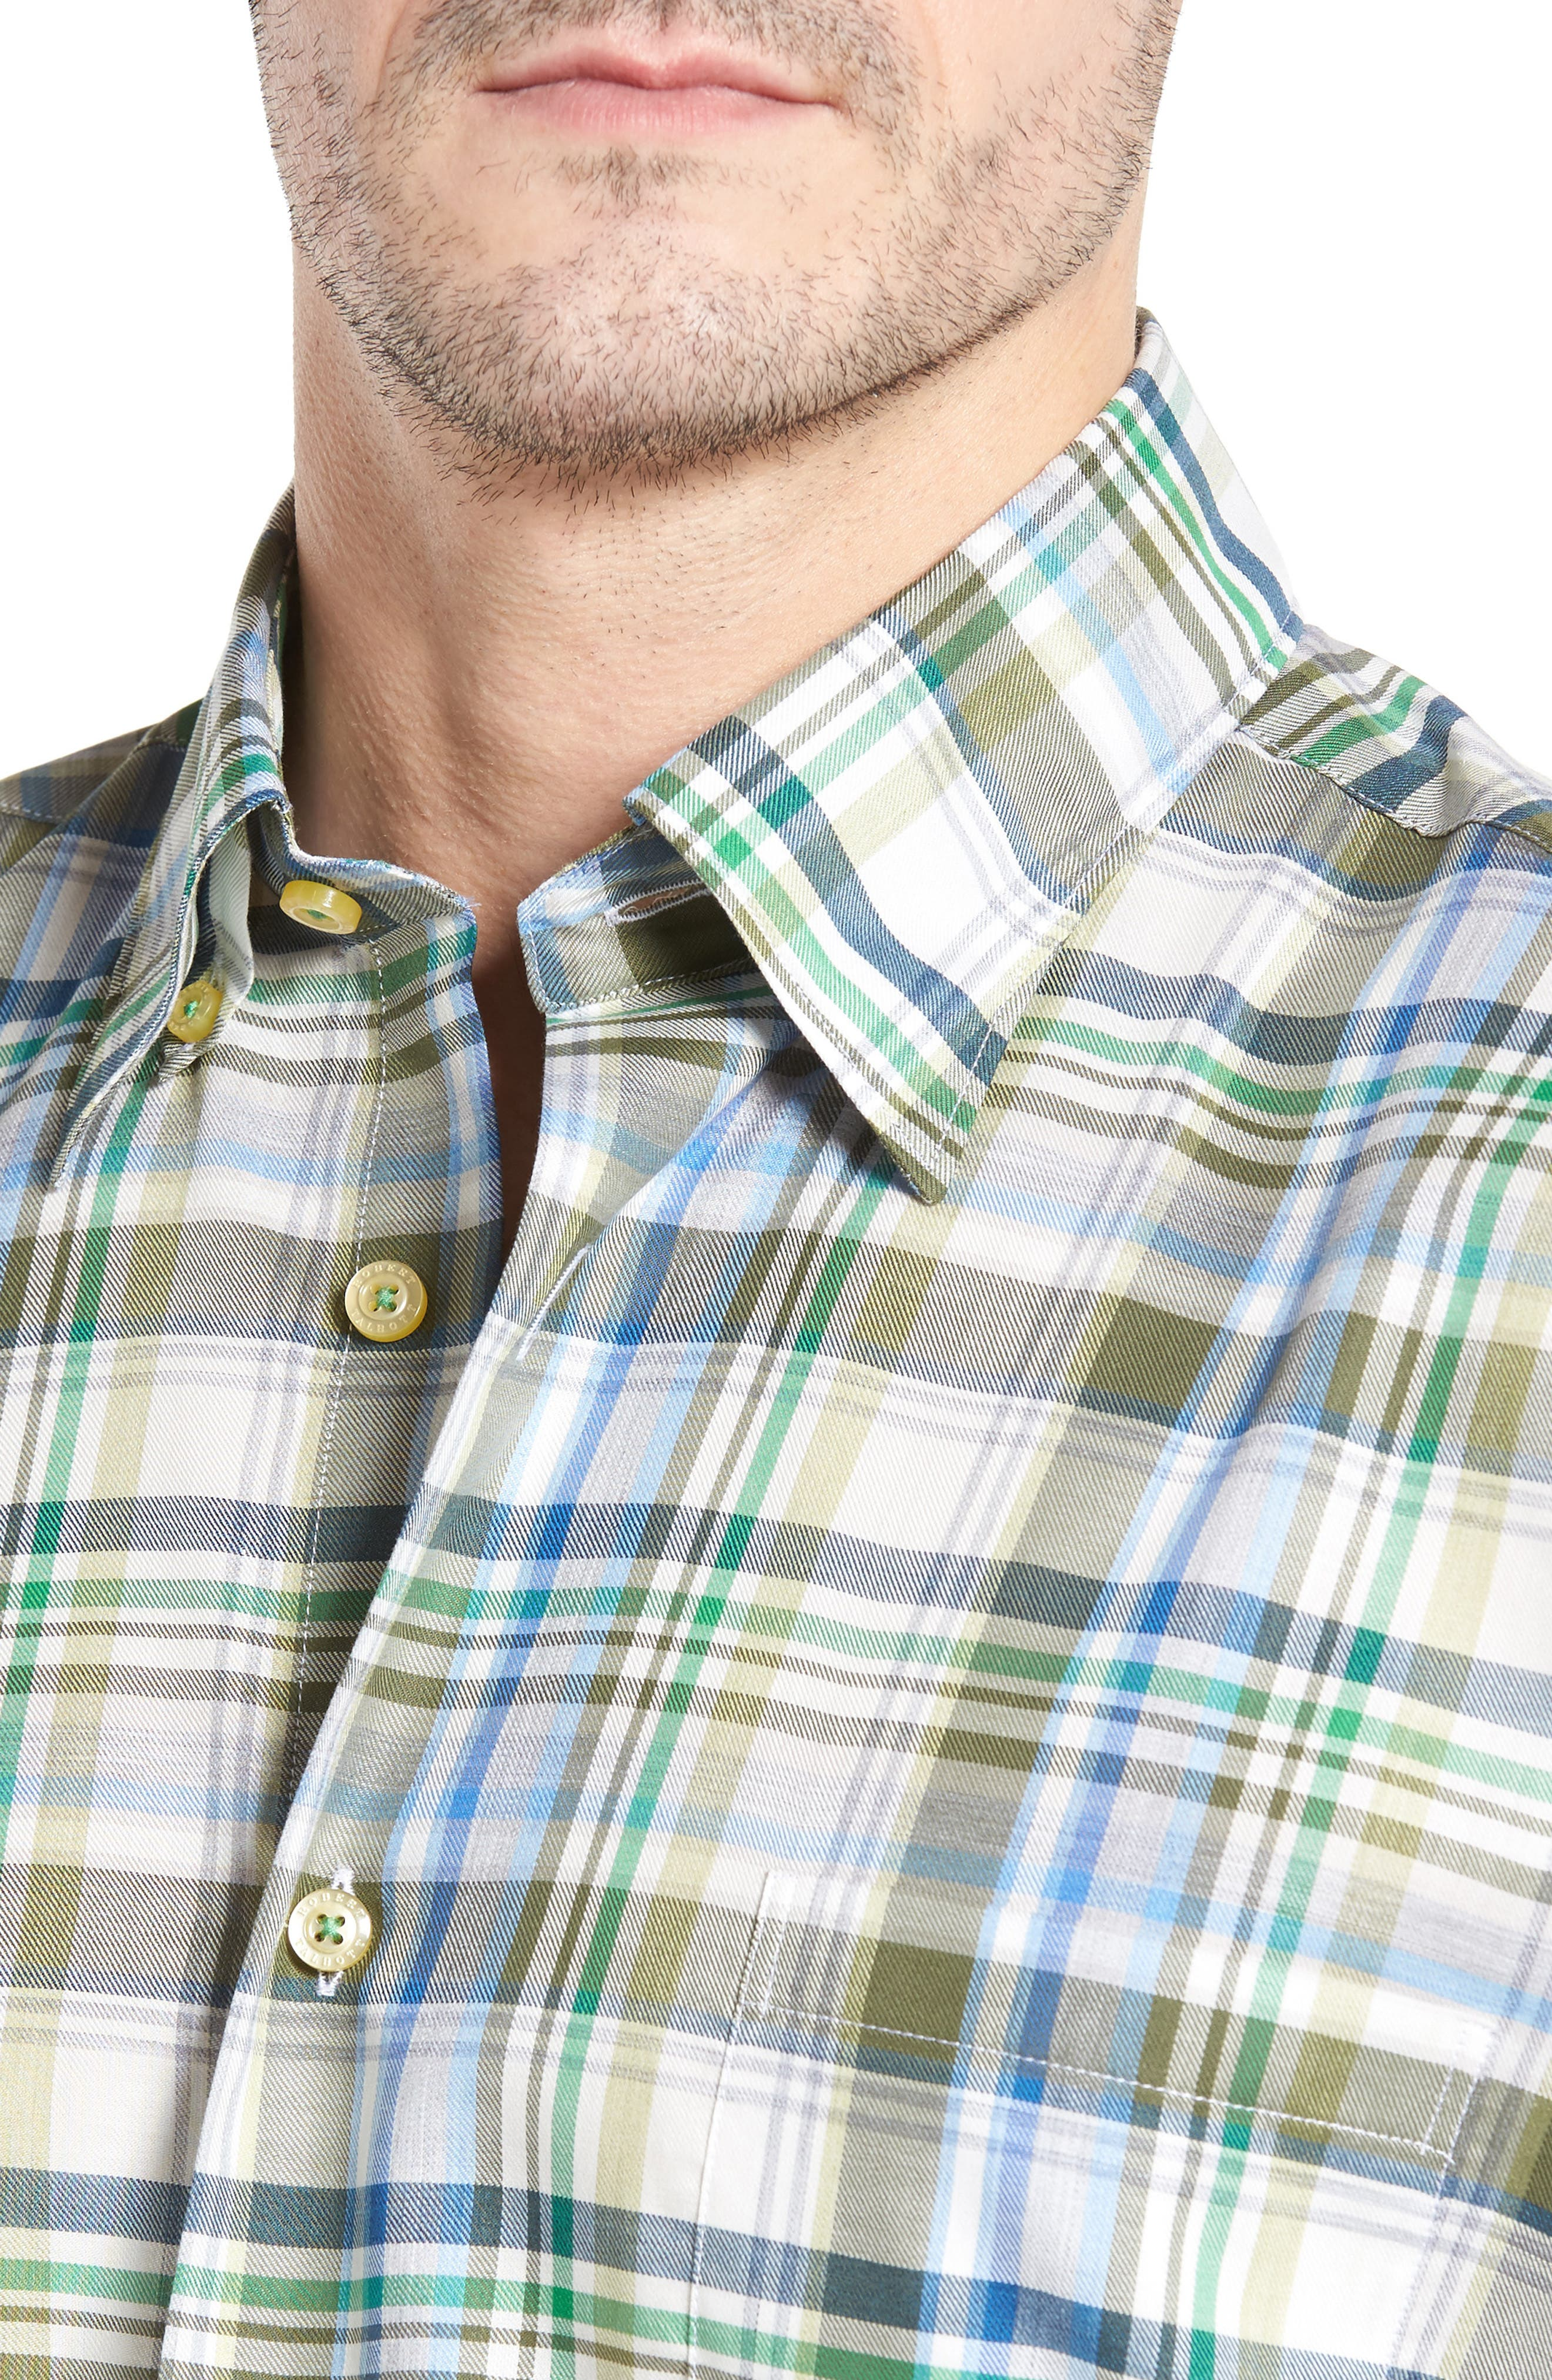 Anderson Classic Fit Plaid Micro Twill Sport Shirt,                             Alternate thumbnail 4, color,                             300